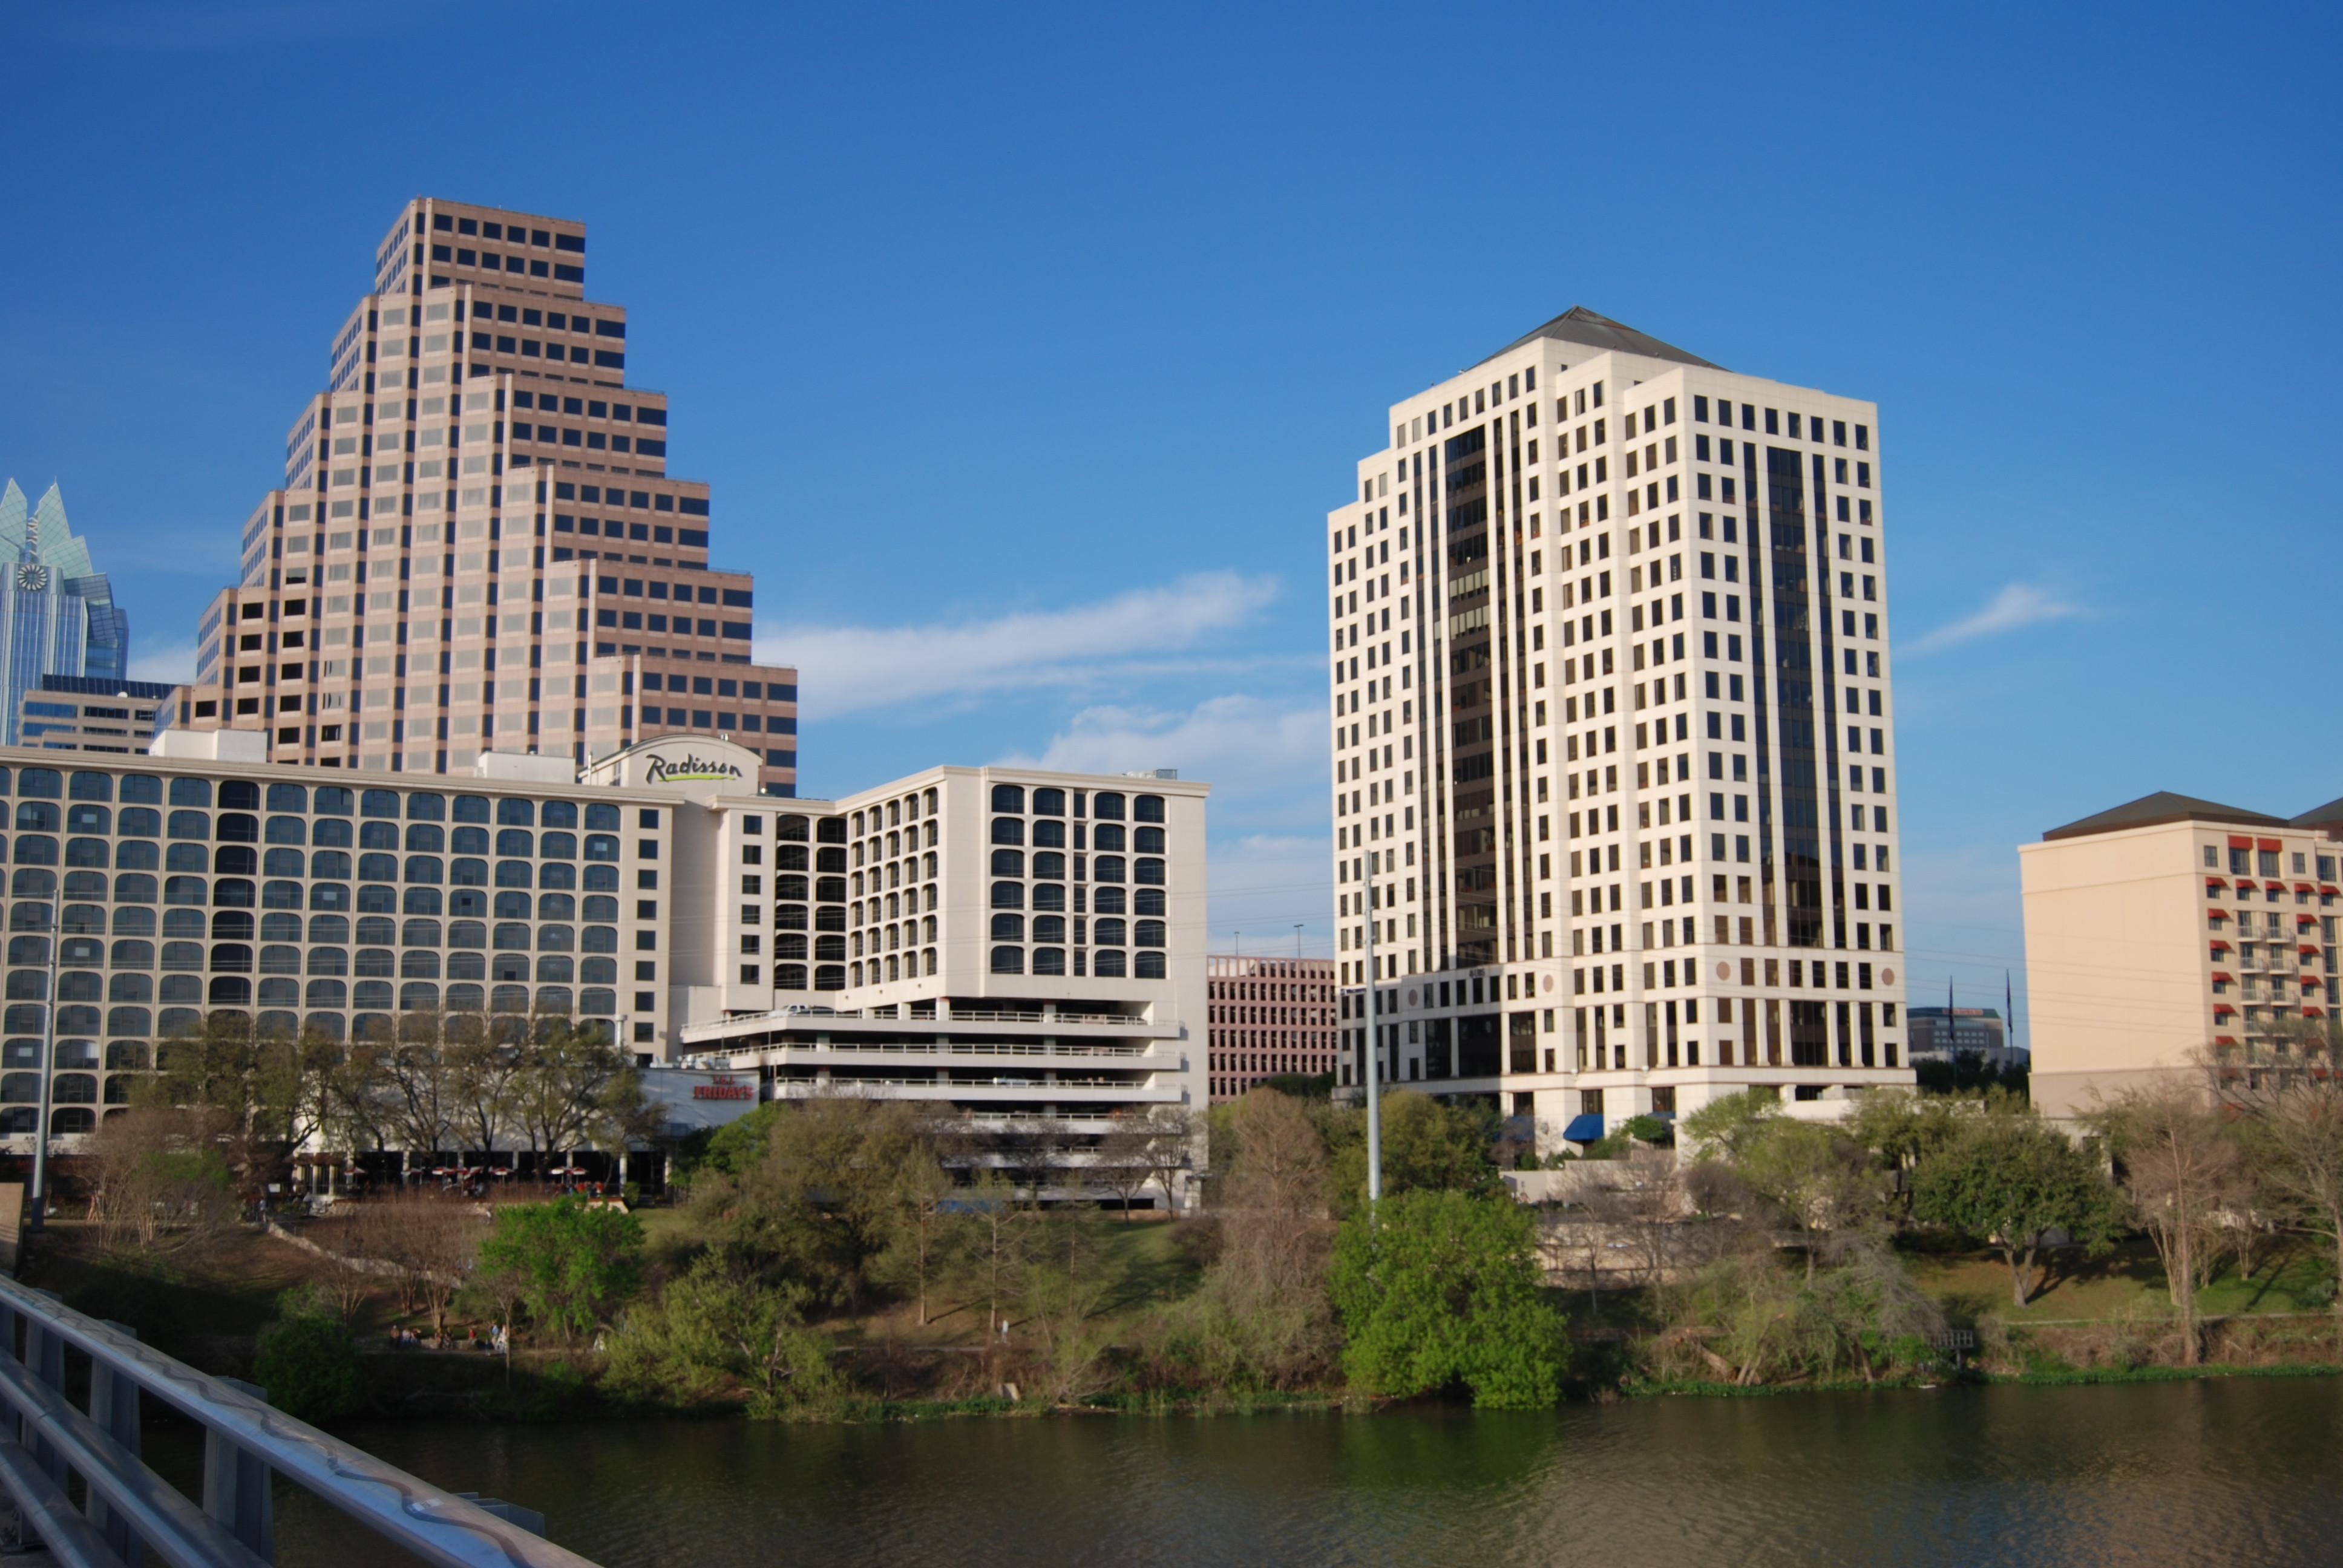 Austin Family Vacations Trips Getaways Families